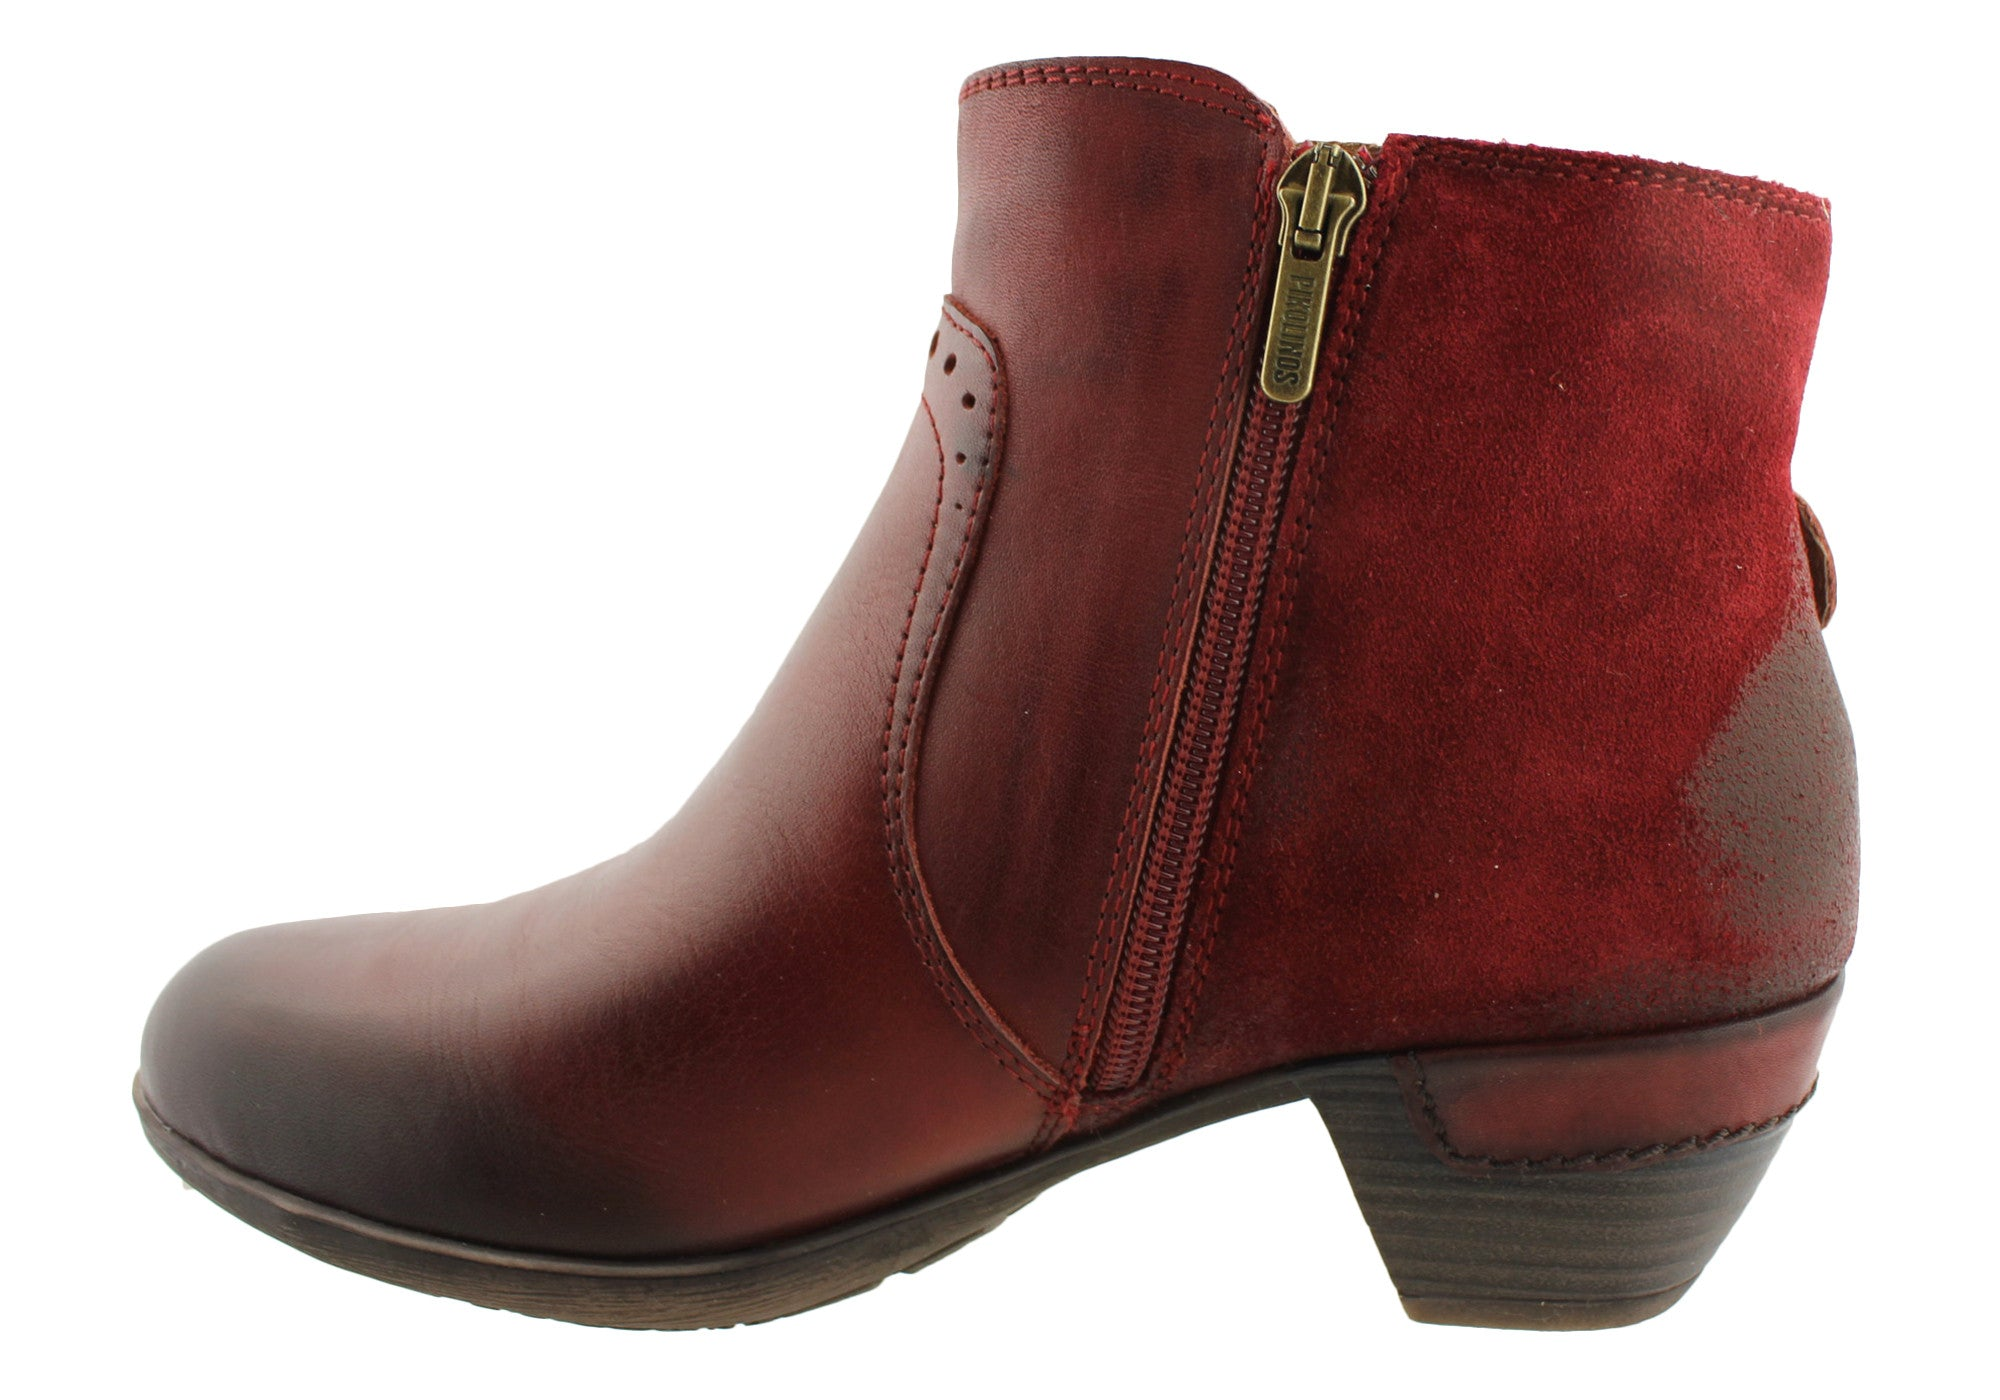 Pikolinos 902-9945 Womens Leather Ankle Boots